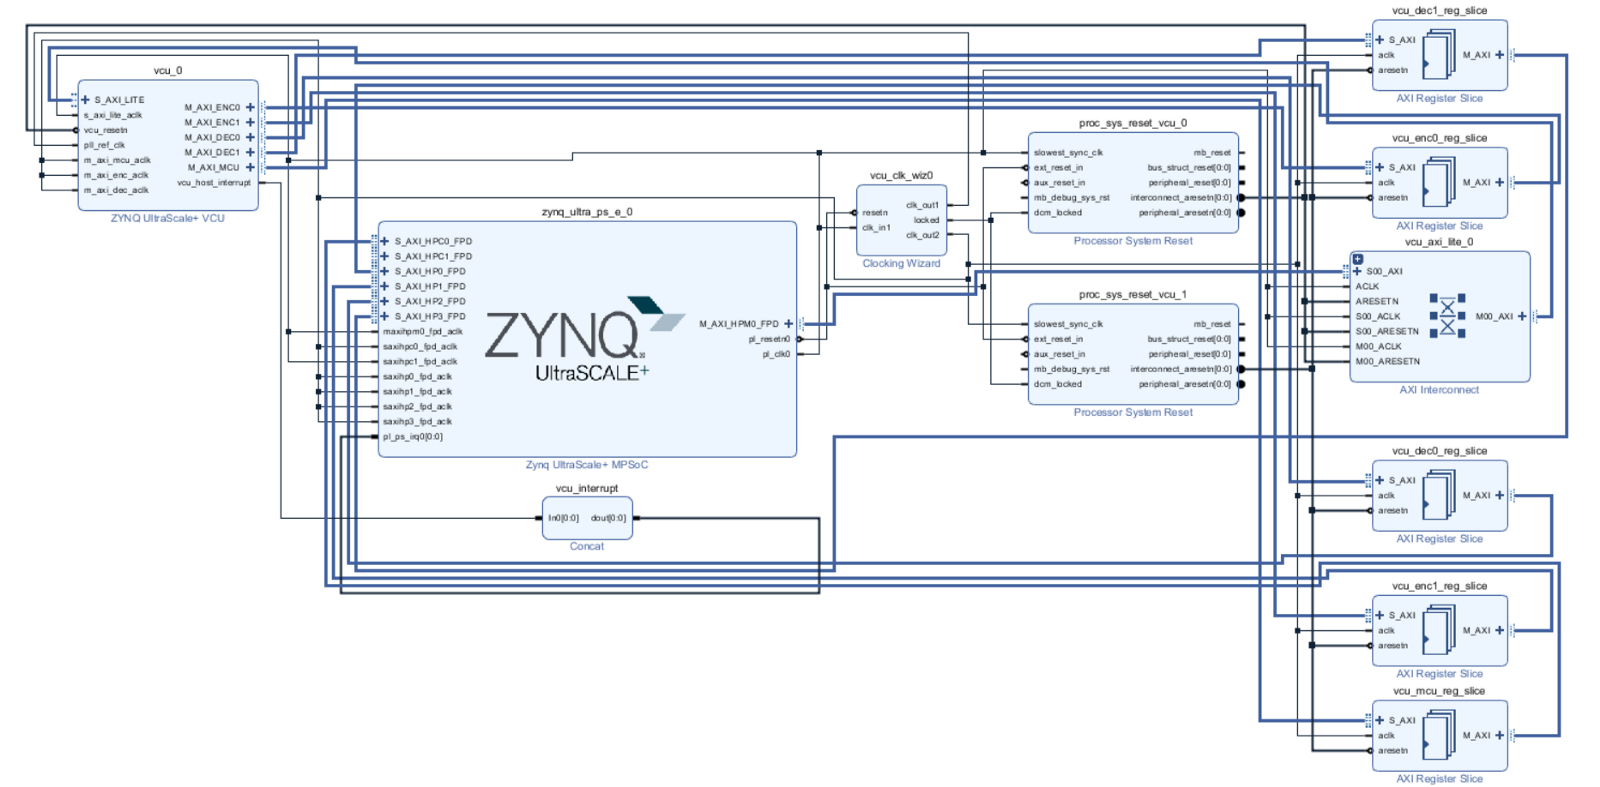 Microzed Chronicles A Look At The Zynq Mpsoc Ev H265 Video Codec H 264 Encoder Block Diagram Explanation Implementation Using Ps Ddr Memory